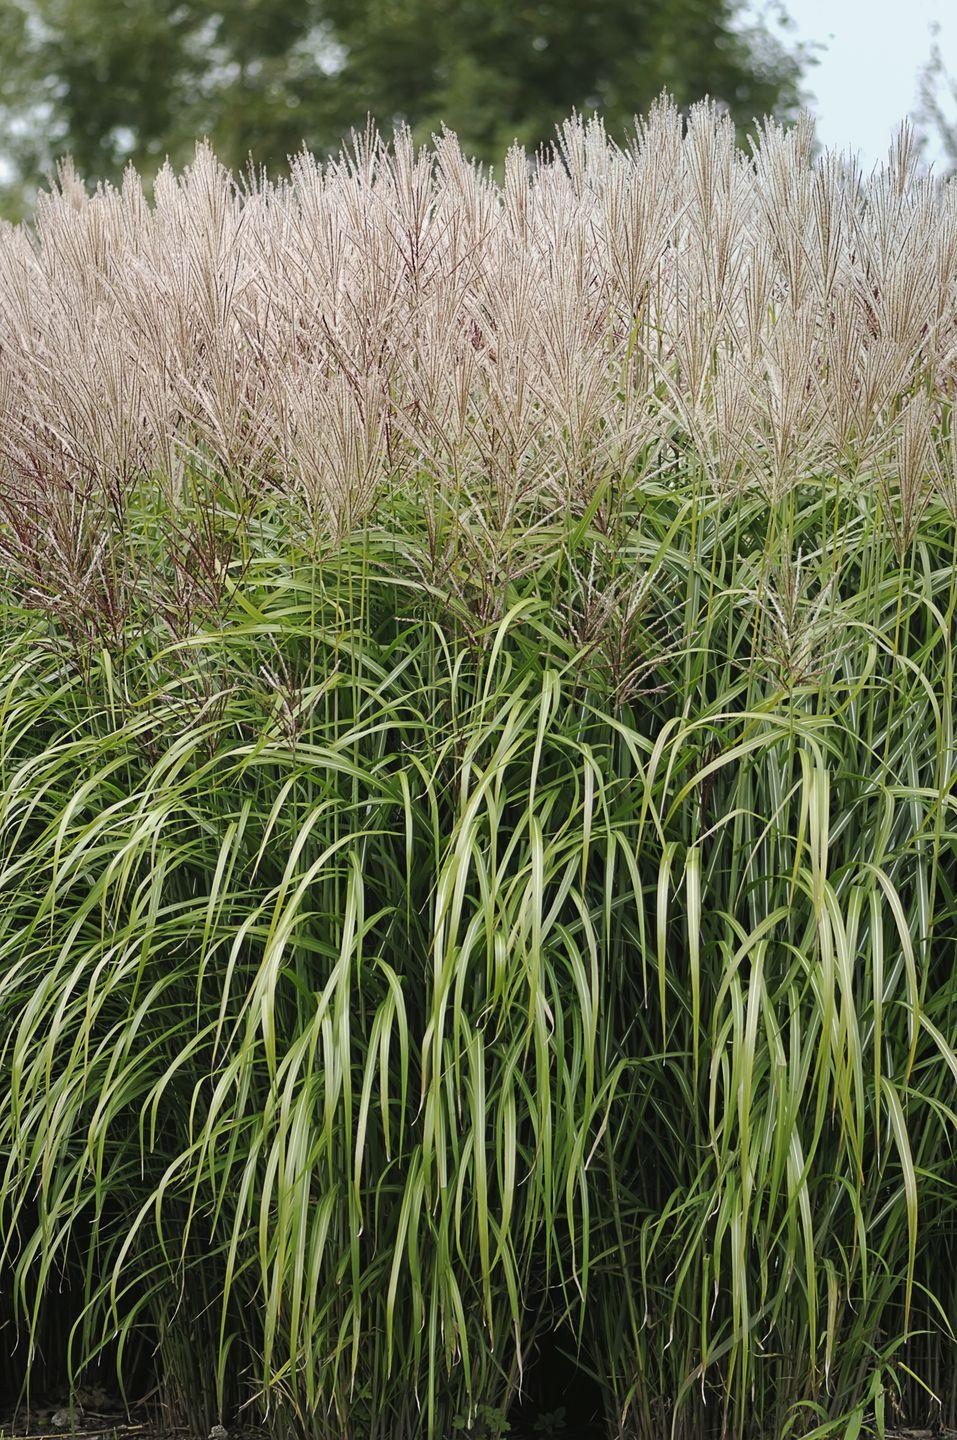 """<p>This <a href=""""https://www.thespruce.com/maiden-grass-miscanthus-sinensis-gracillimus-2132484"""" rel=""""nofollow noopener"""" target=""""_blank"""" data-ylk=""""slk:tall grass variety"""" class=""""link rapid-noclick-resp"""">tall grass variety</a> adds beautiful texture and serve as a soft backdrop for more vibrant pairings. In early fall, the coppery flower heads of maiden grass turn into white plumes which last into the colder months. <br></p><p><strong>When it blooms: </strong>Late summer through fall</p><p><strong>Where to plant:</strong> Full sun</p><p><strong>When to plant: </strong>Spring or fall</p><p><strong>USDA Hardiness Zones:</strong> 5 to 9</p>"""